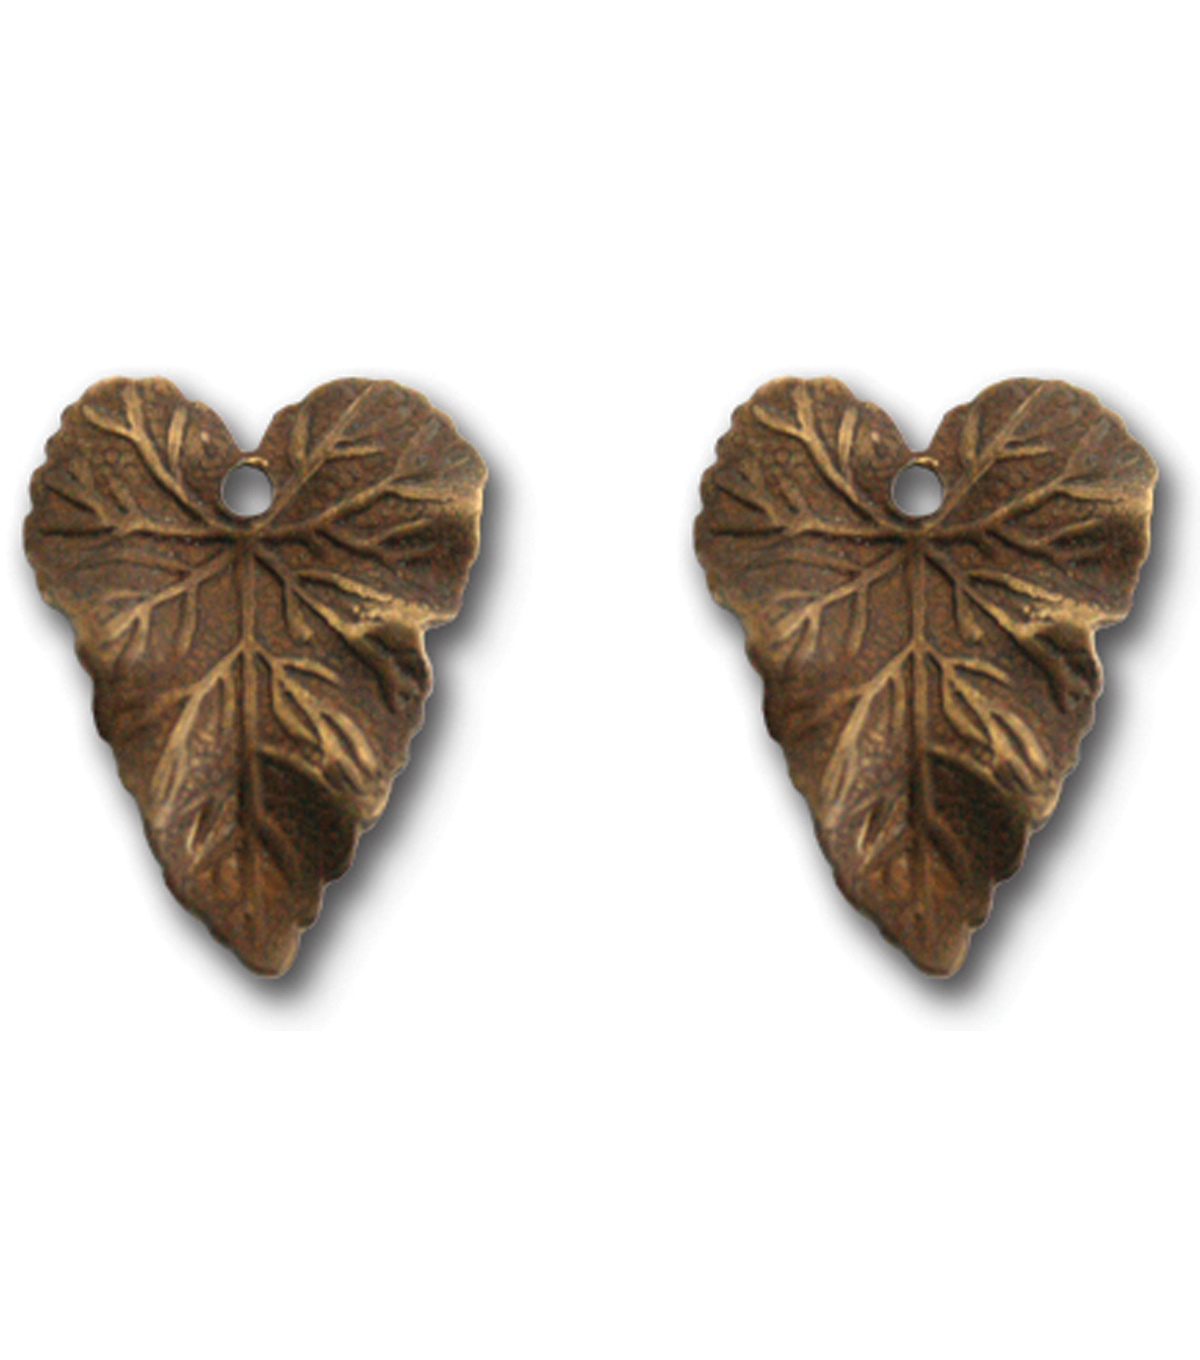 Vintaj Metal Accent-Woodland Leaf 18x14mm